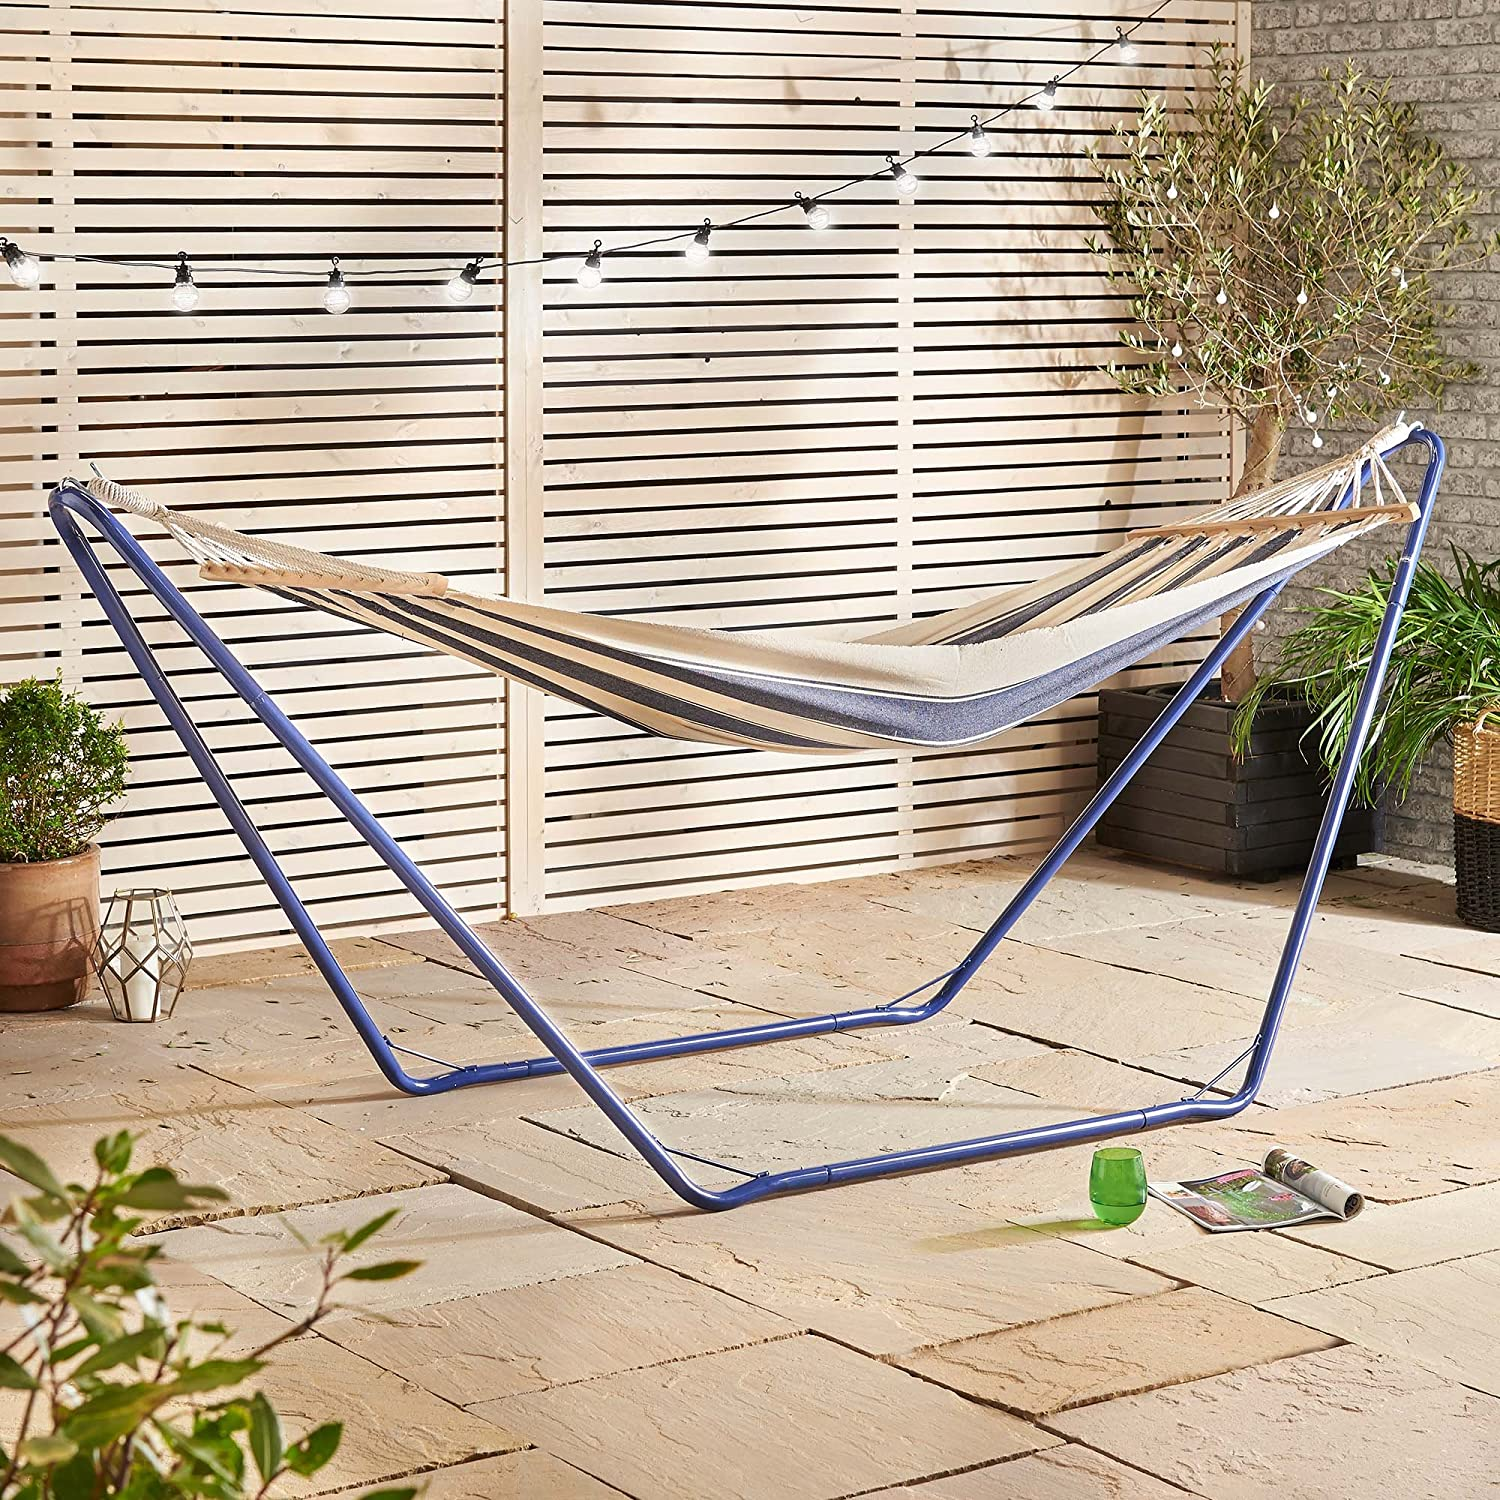 stand your furniture to the fabric cotton orange up grey rope as brown set chair hammock is striped adorable and also with well frame ideas patio plus swing cushion metal backyard mattress perfect spruce